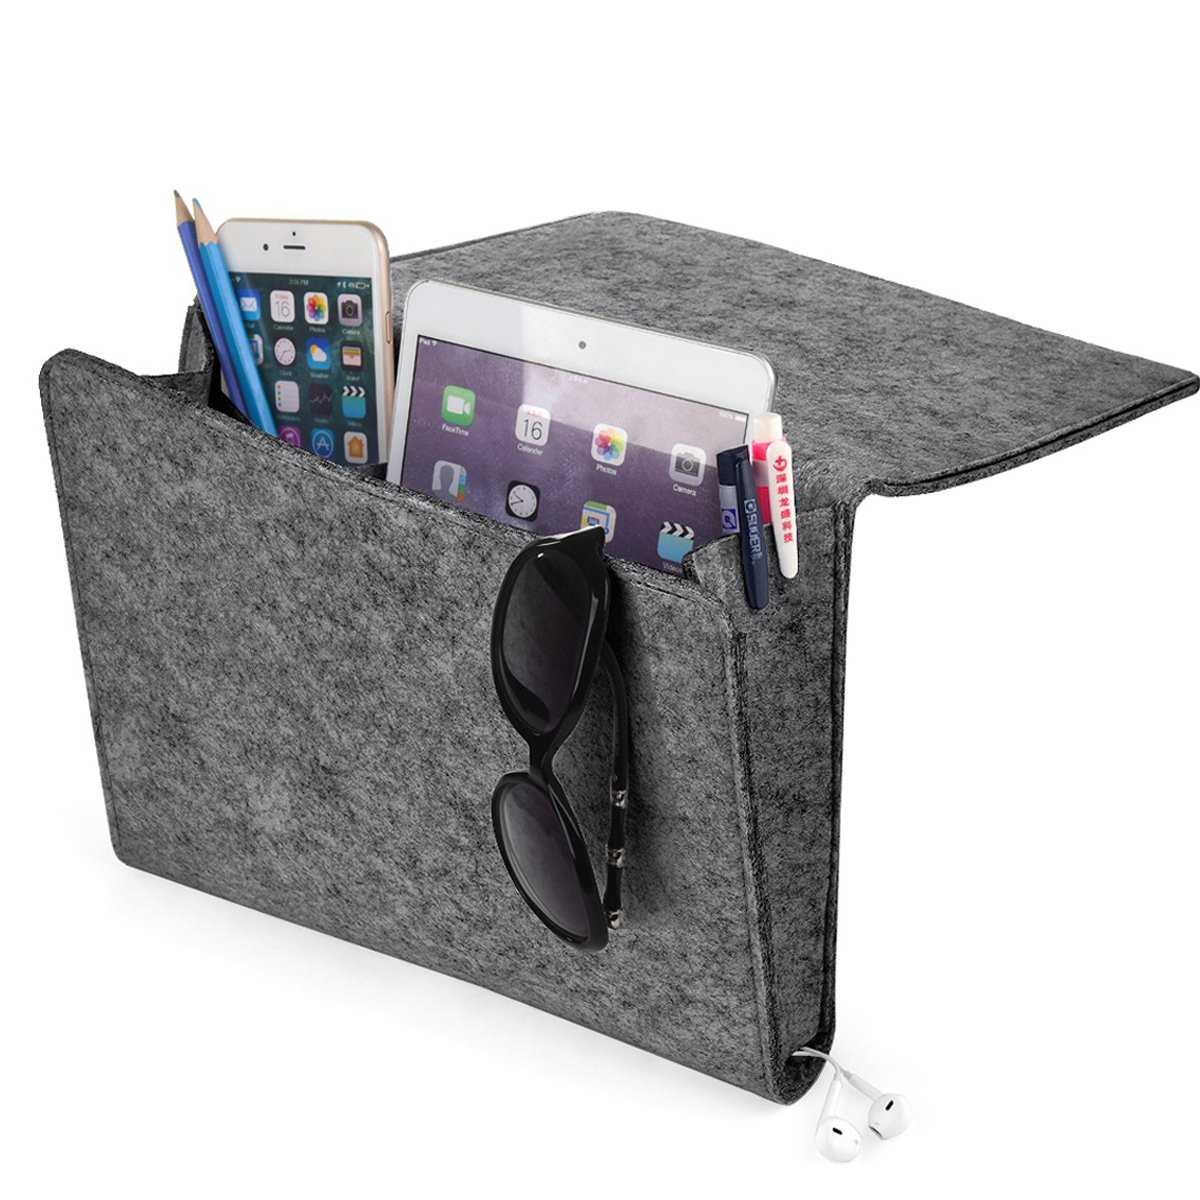 [UPGRADED] Thicker Bedside Caddy, Bed Caddy Storage Organizer Home Sofa Desk Felt Bedside Pocket with Cable Holes 2 Small Pockets for Organizing Tablet Magazine Phone Small Things Holder (Gray) KEHANGDA T108